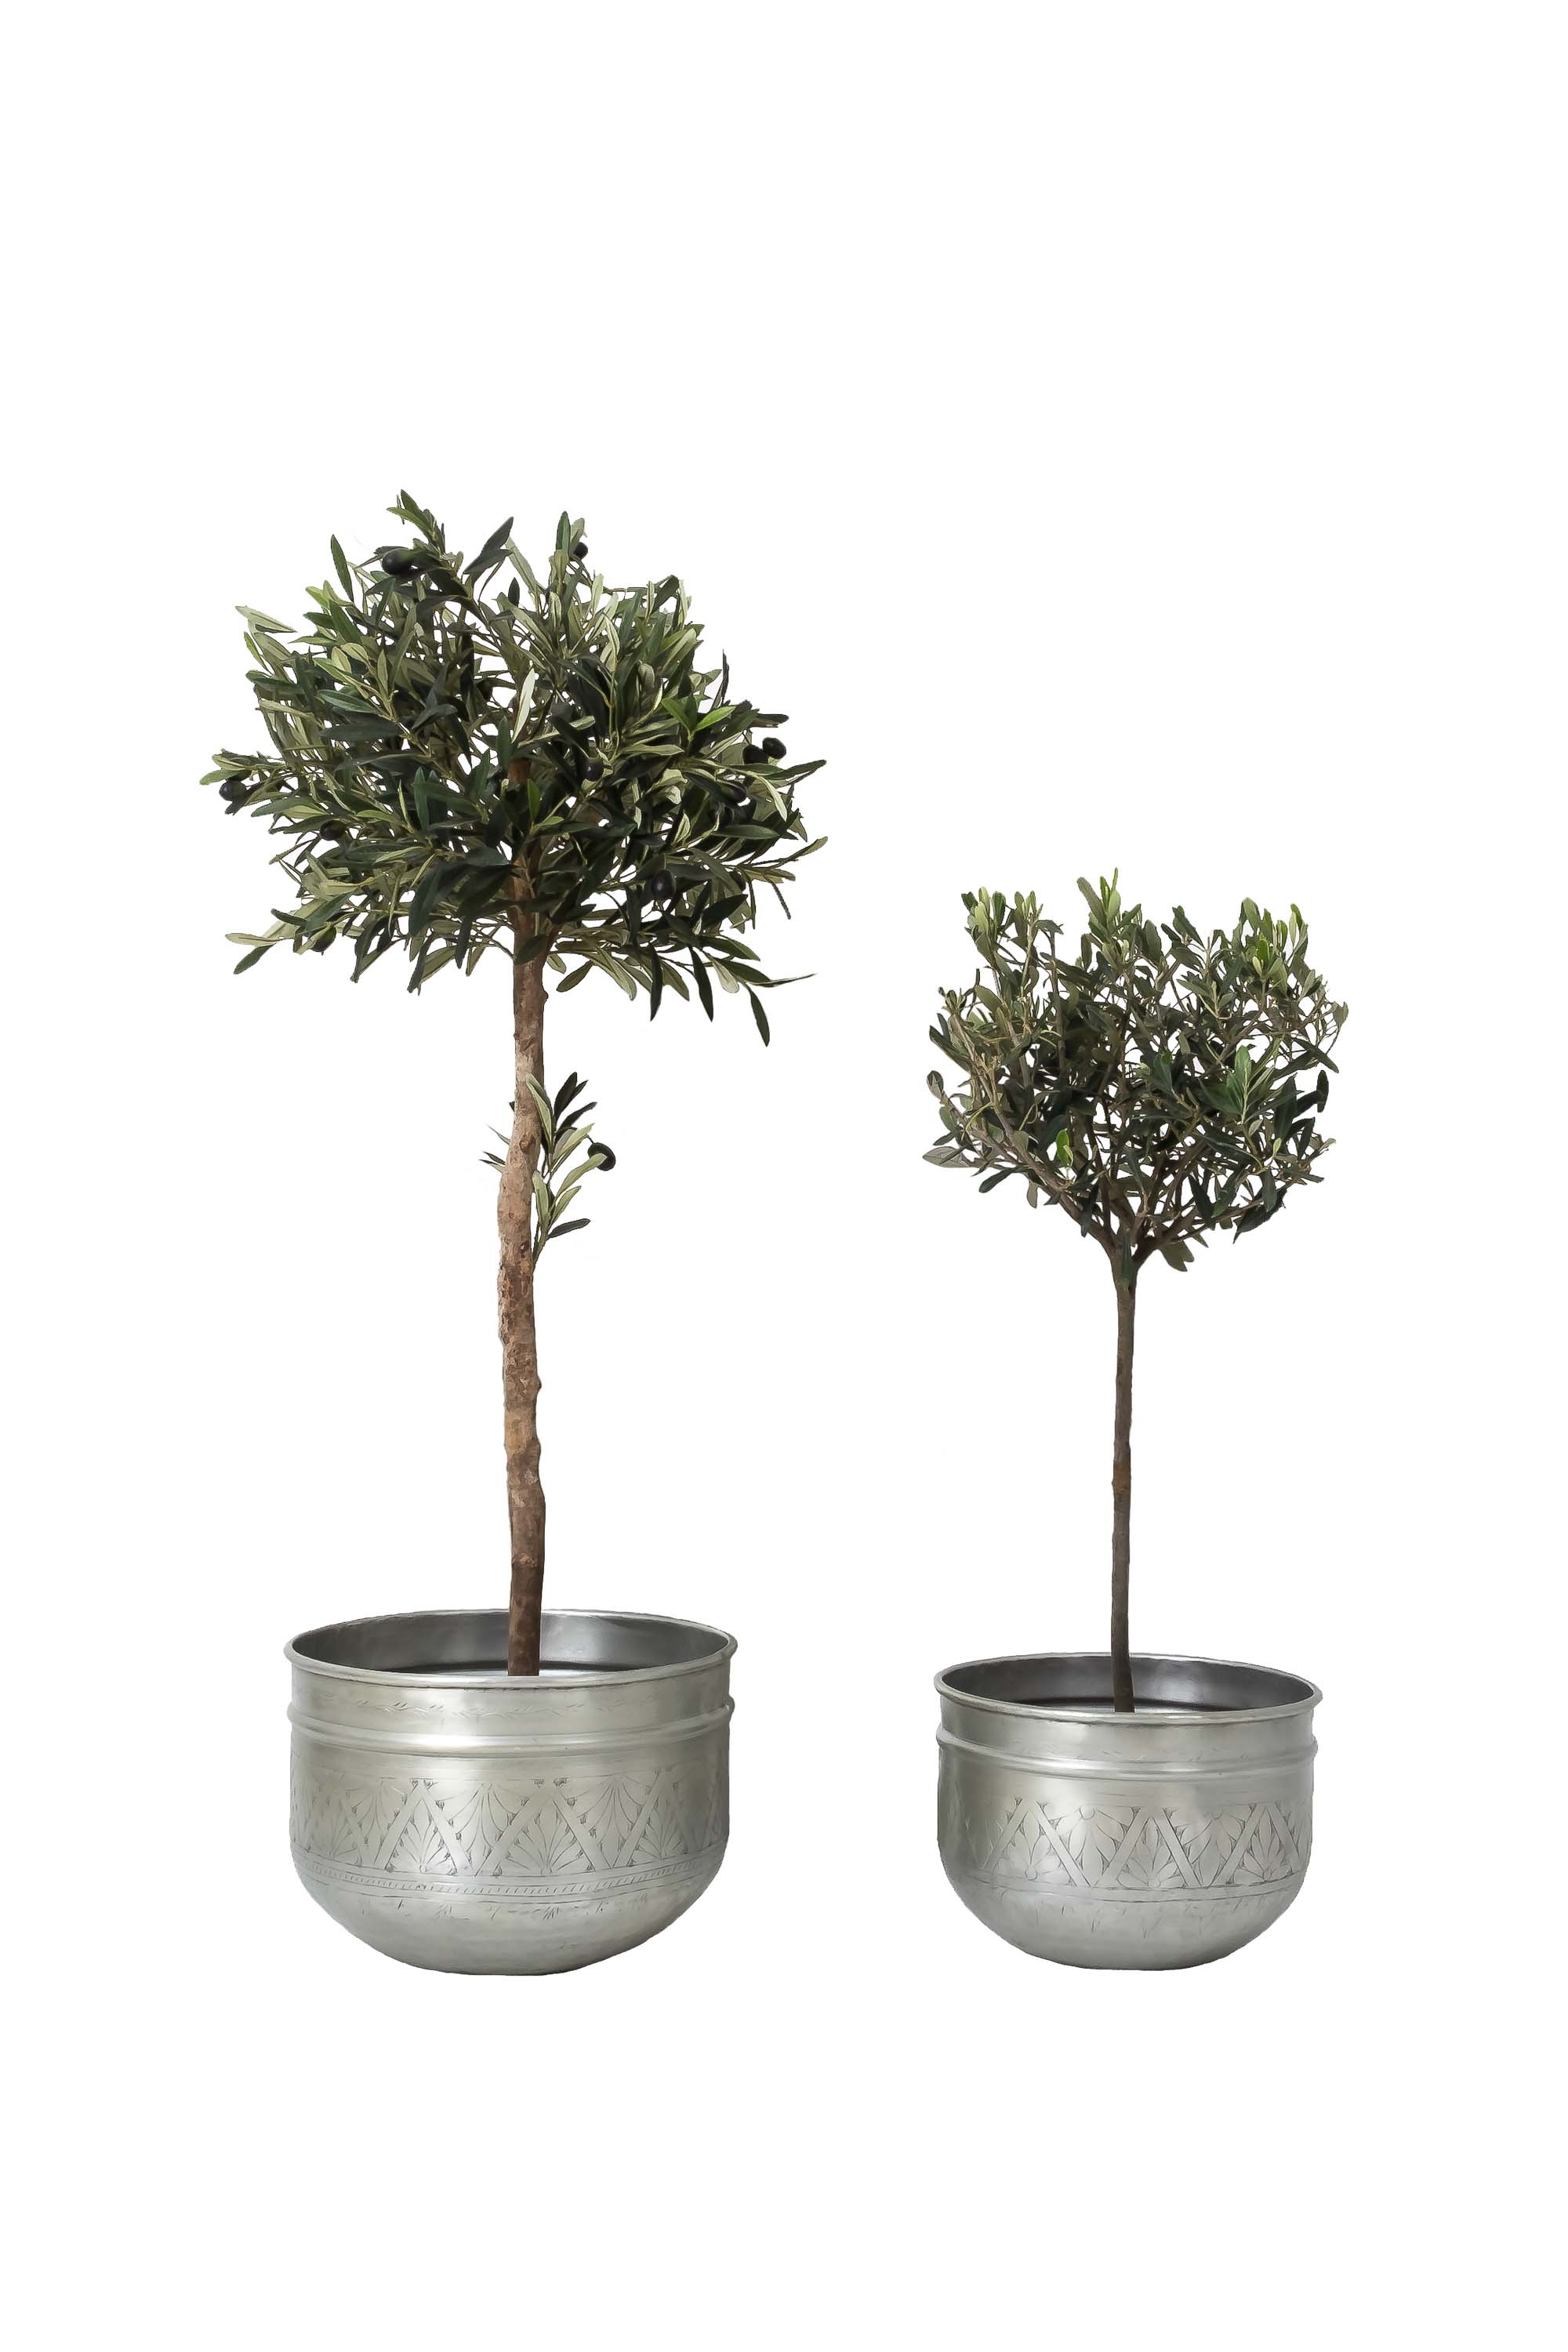 India May Home planters